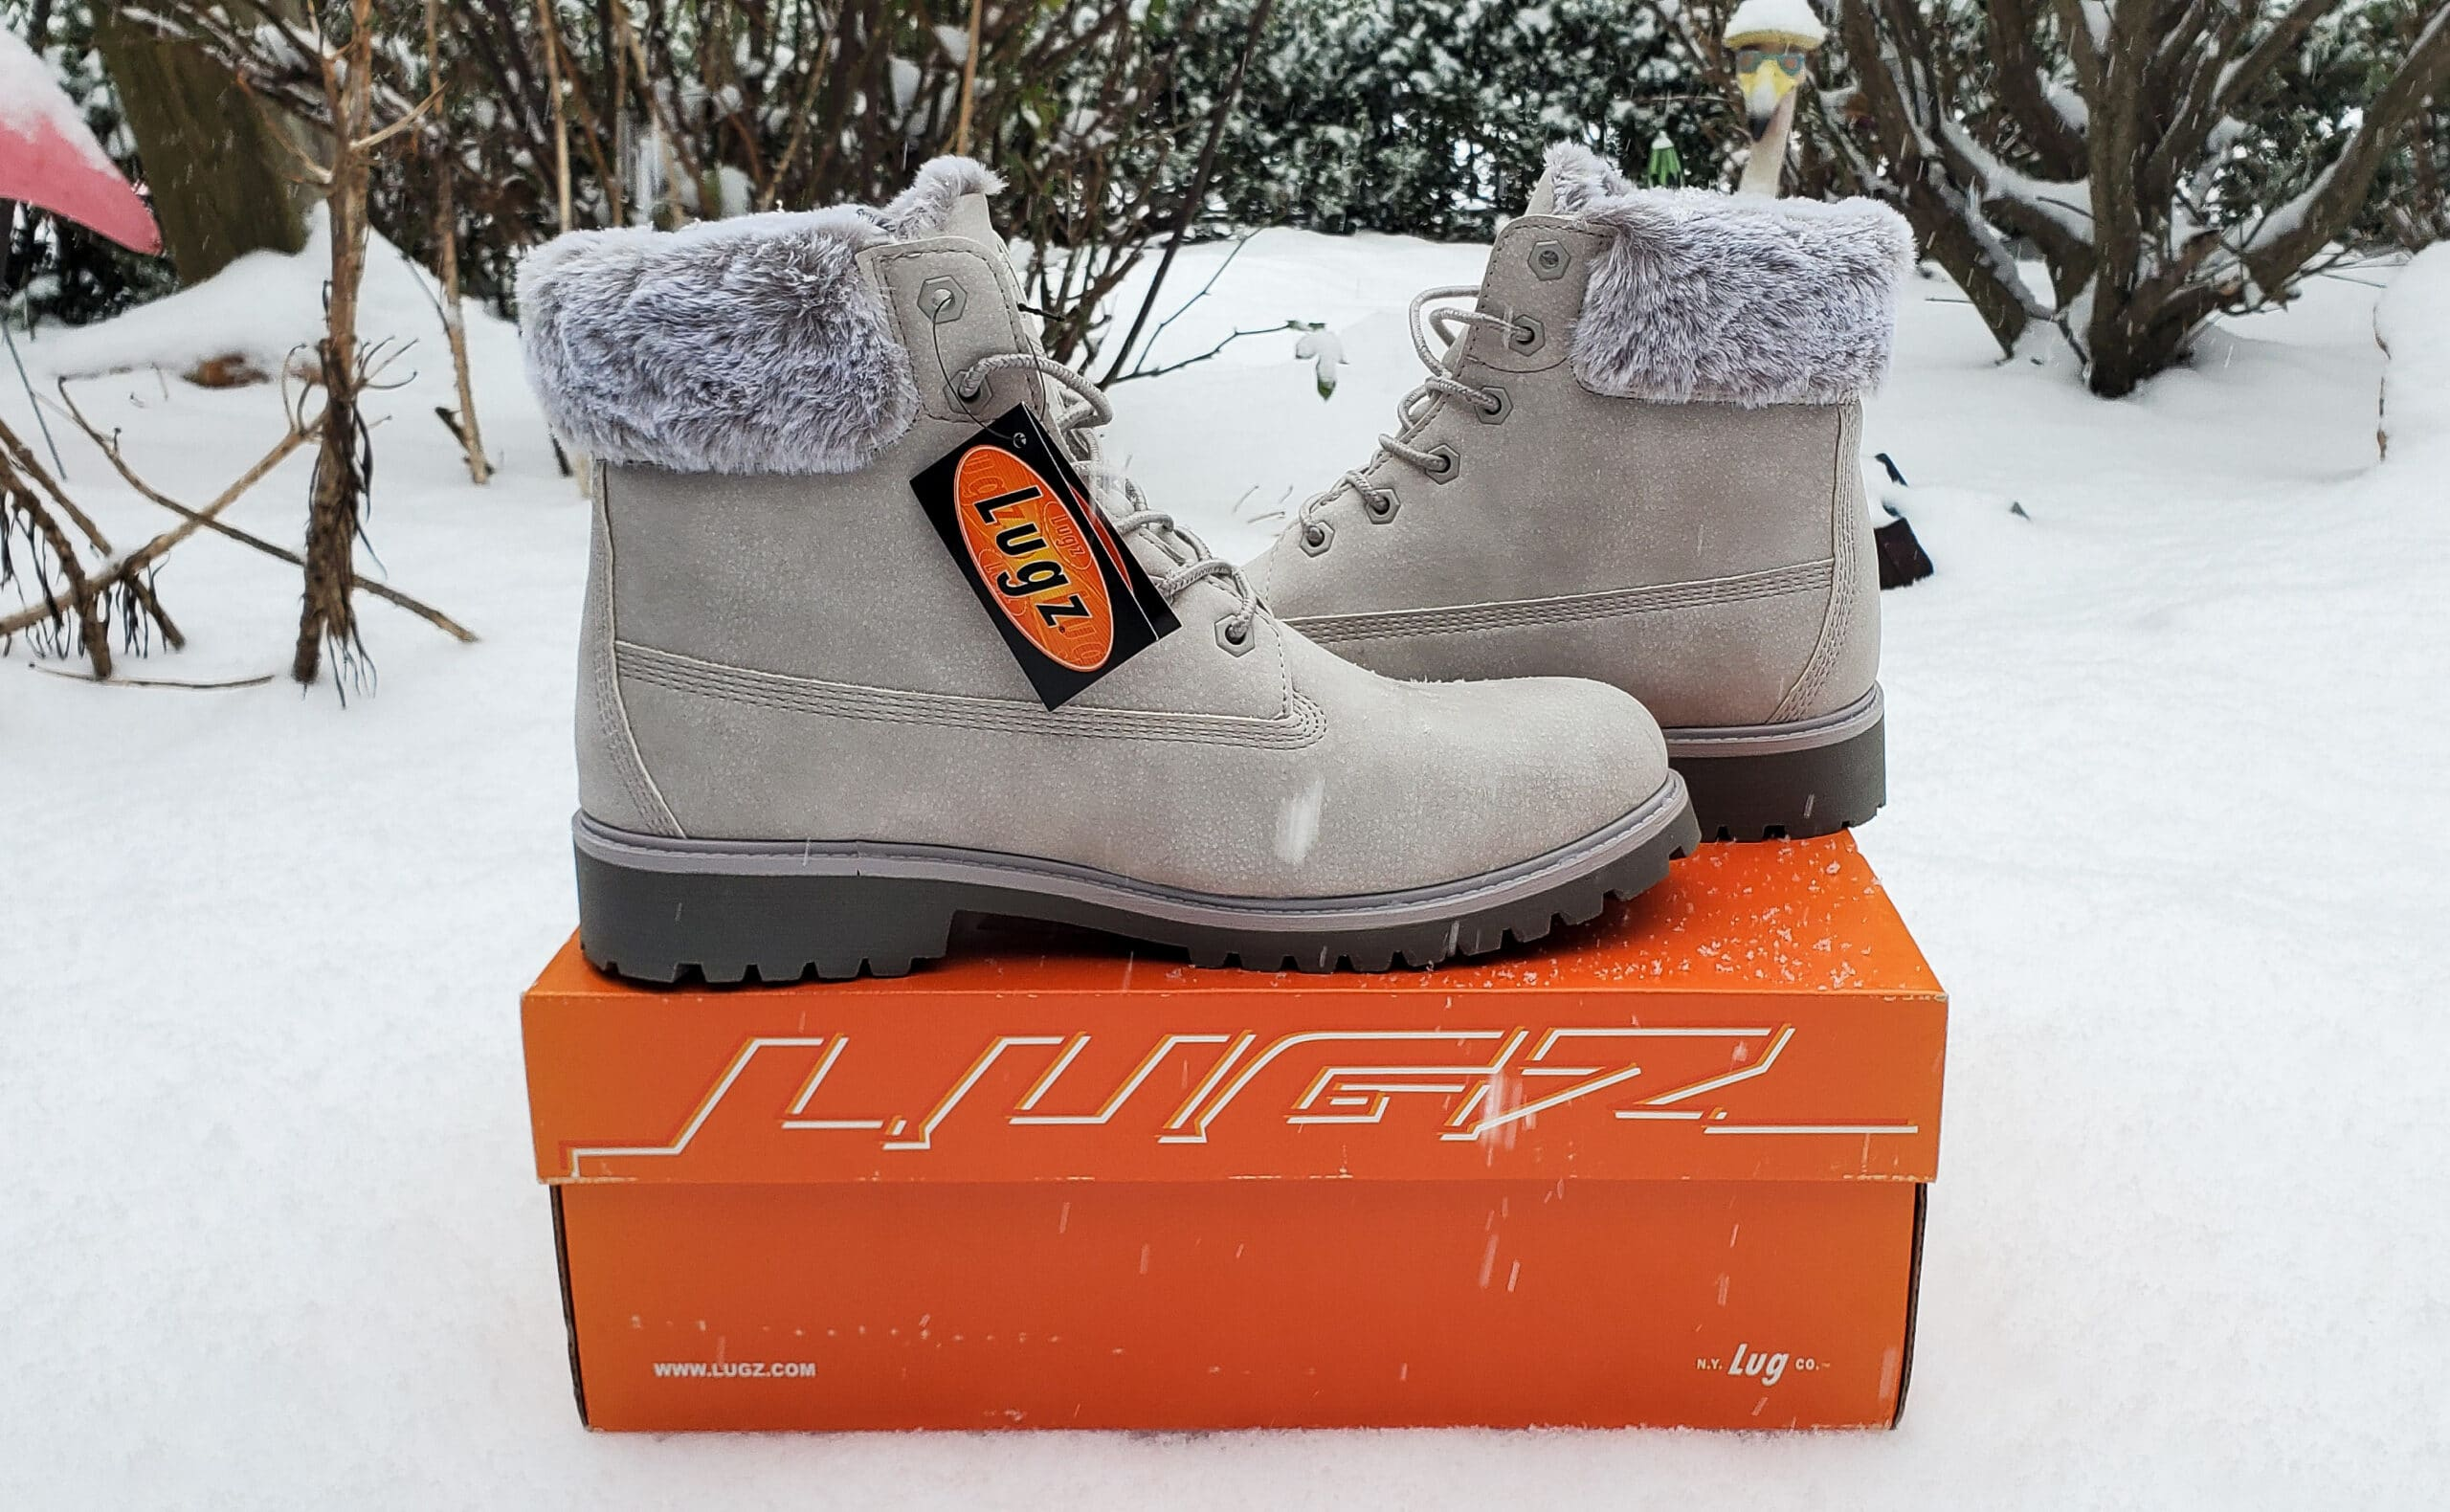 Lugz Convoy Fur Boot. Easy to style and fits seamlessly into my winter wardrobe. Read why I'm recommending this comfy and stylish gift in my Lugz Convoy Fur Boot Review.